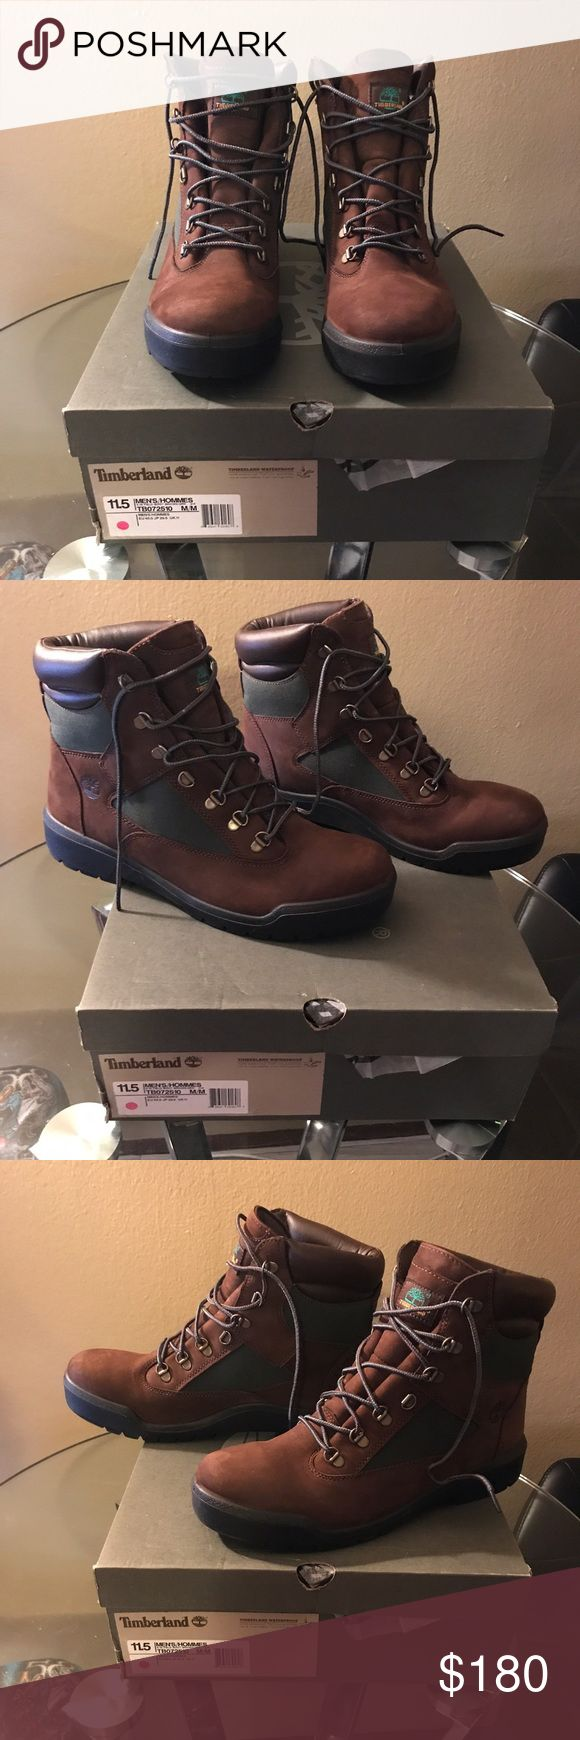 Slightly used one time In brand new condition:                                                            🚫Trades 🚫.                                                                          🚫Price Firmed🚫 Timberland Shoes Boots